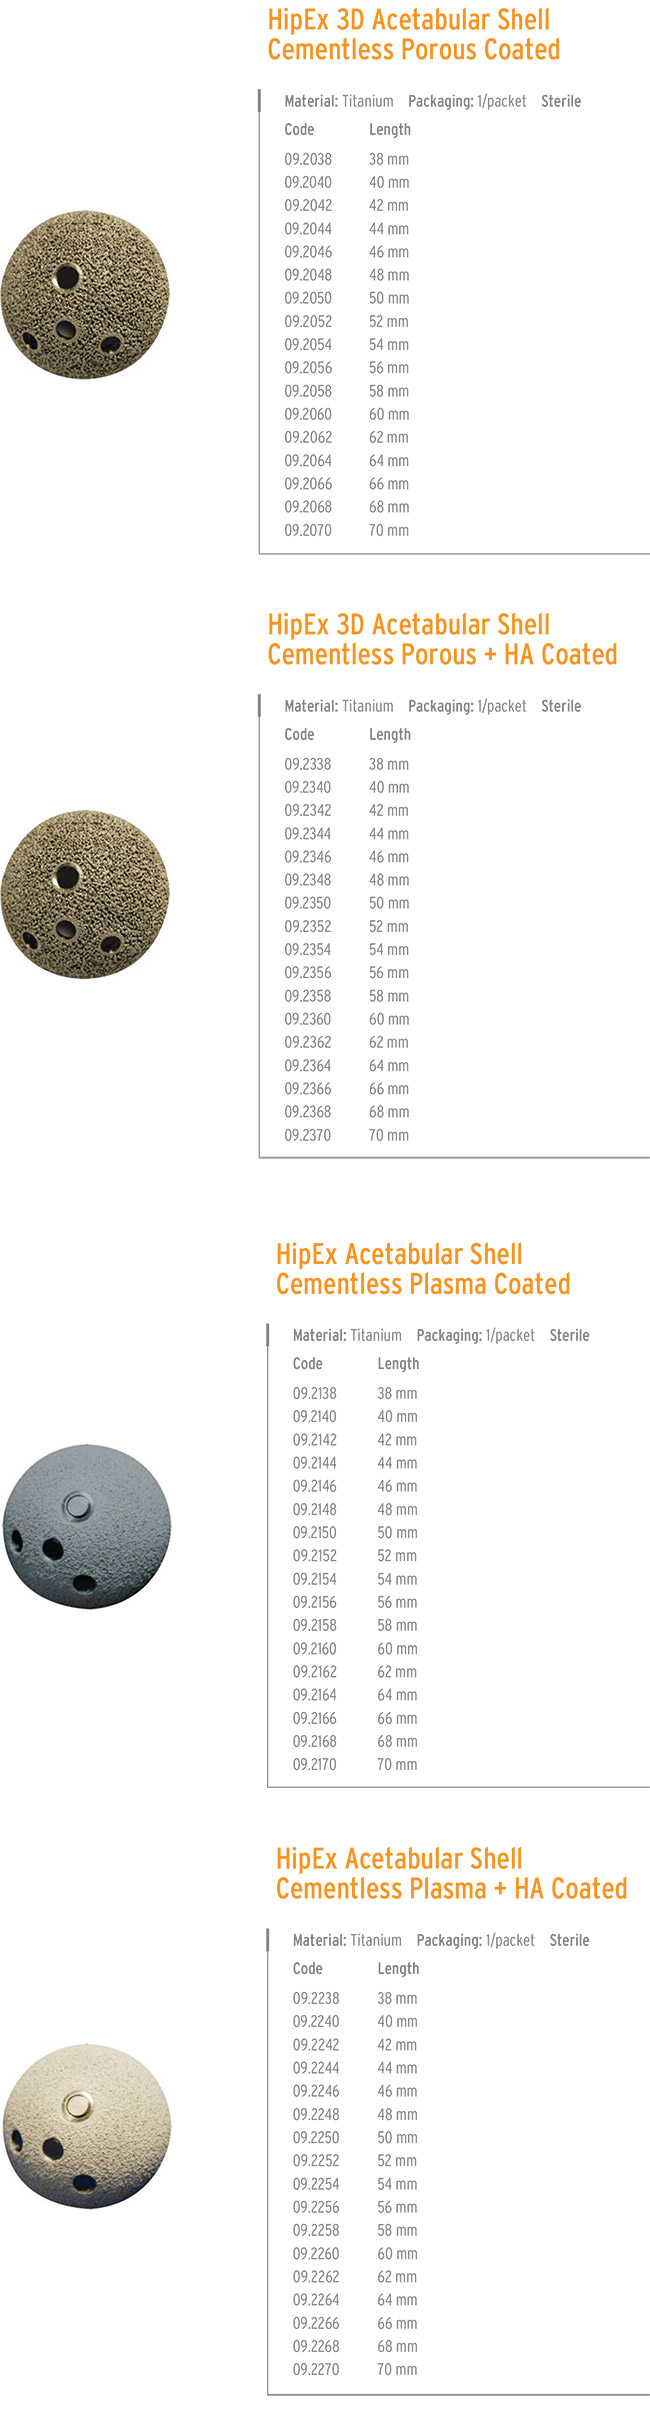 HIPEX 3D CEMENTLESS ASETABULAR